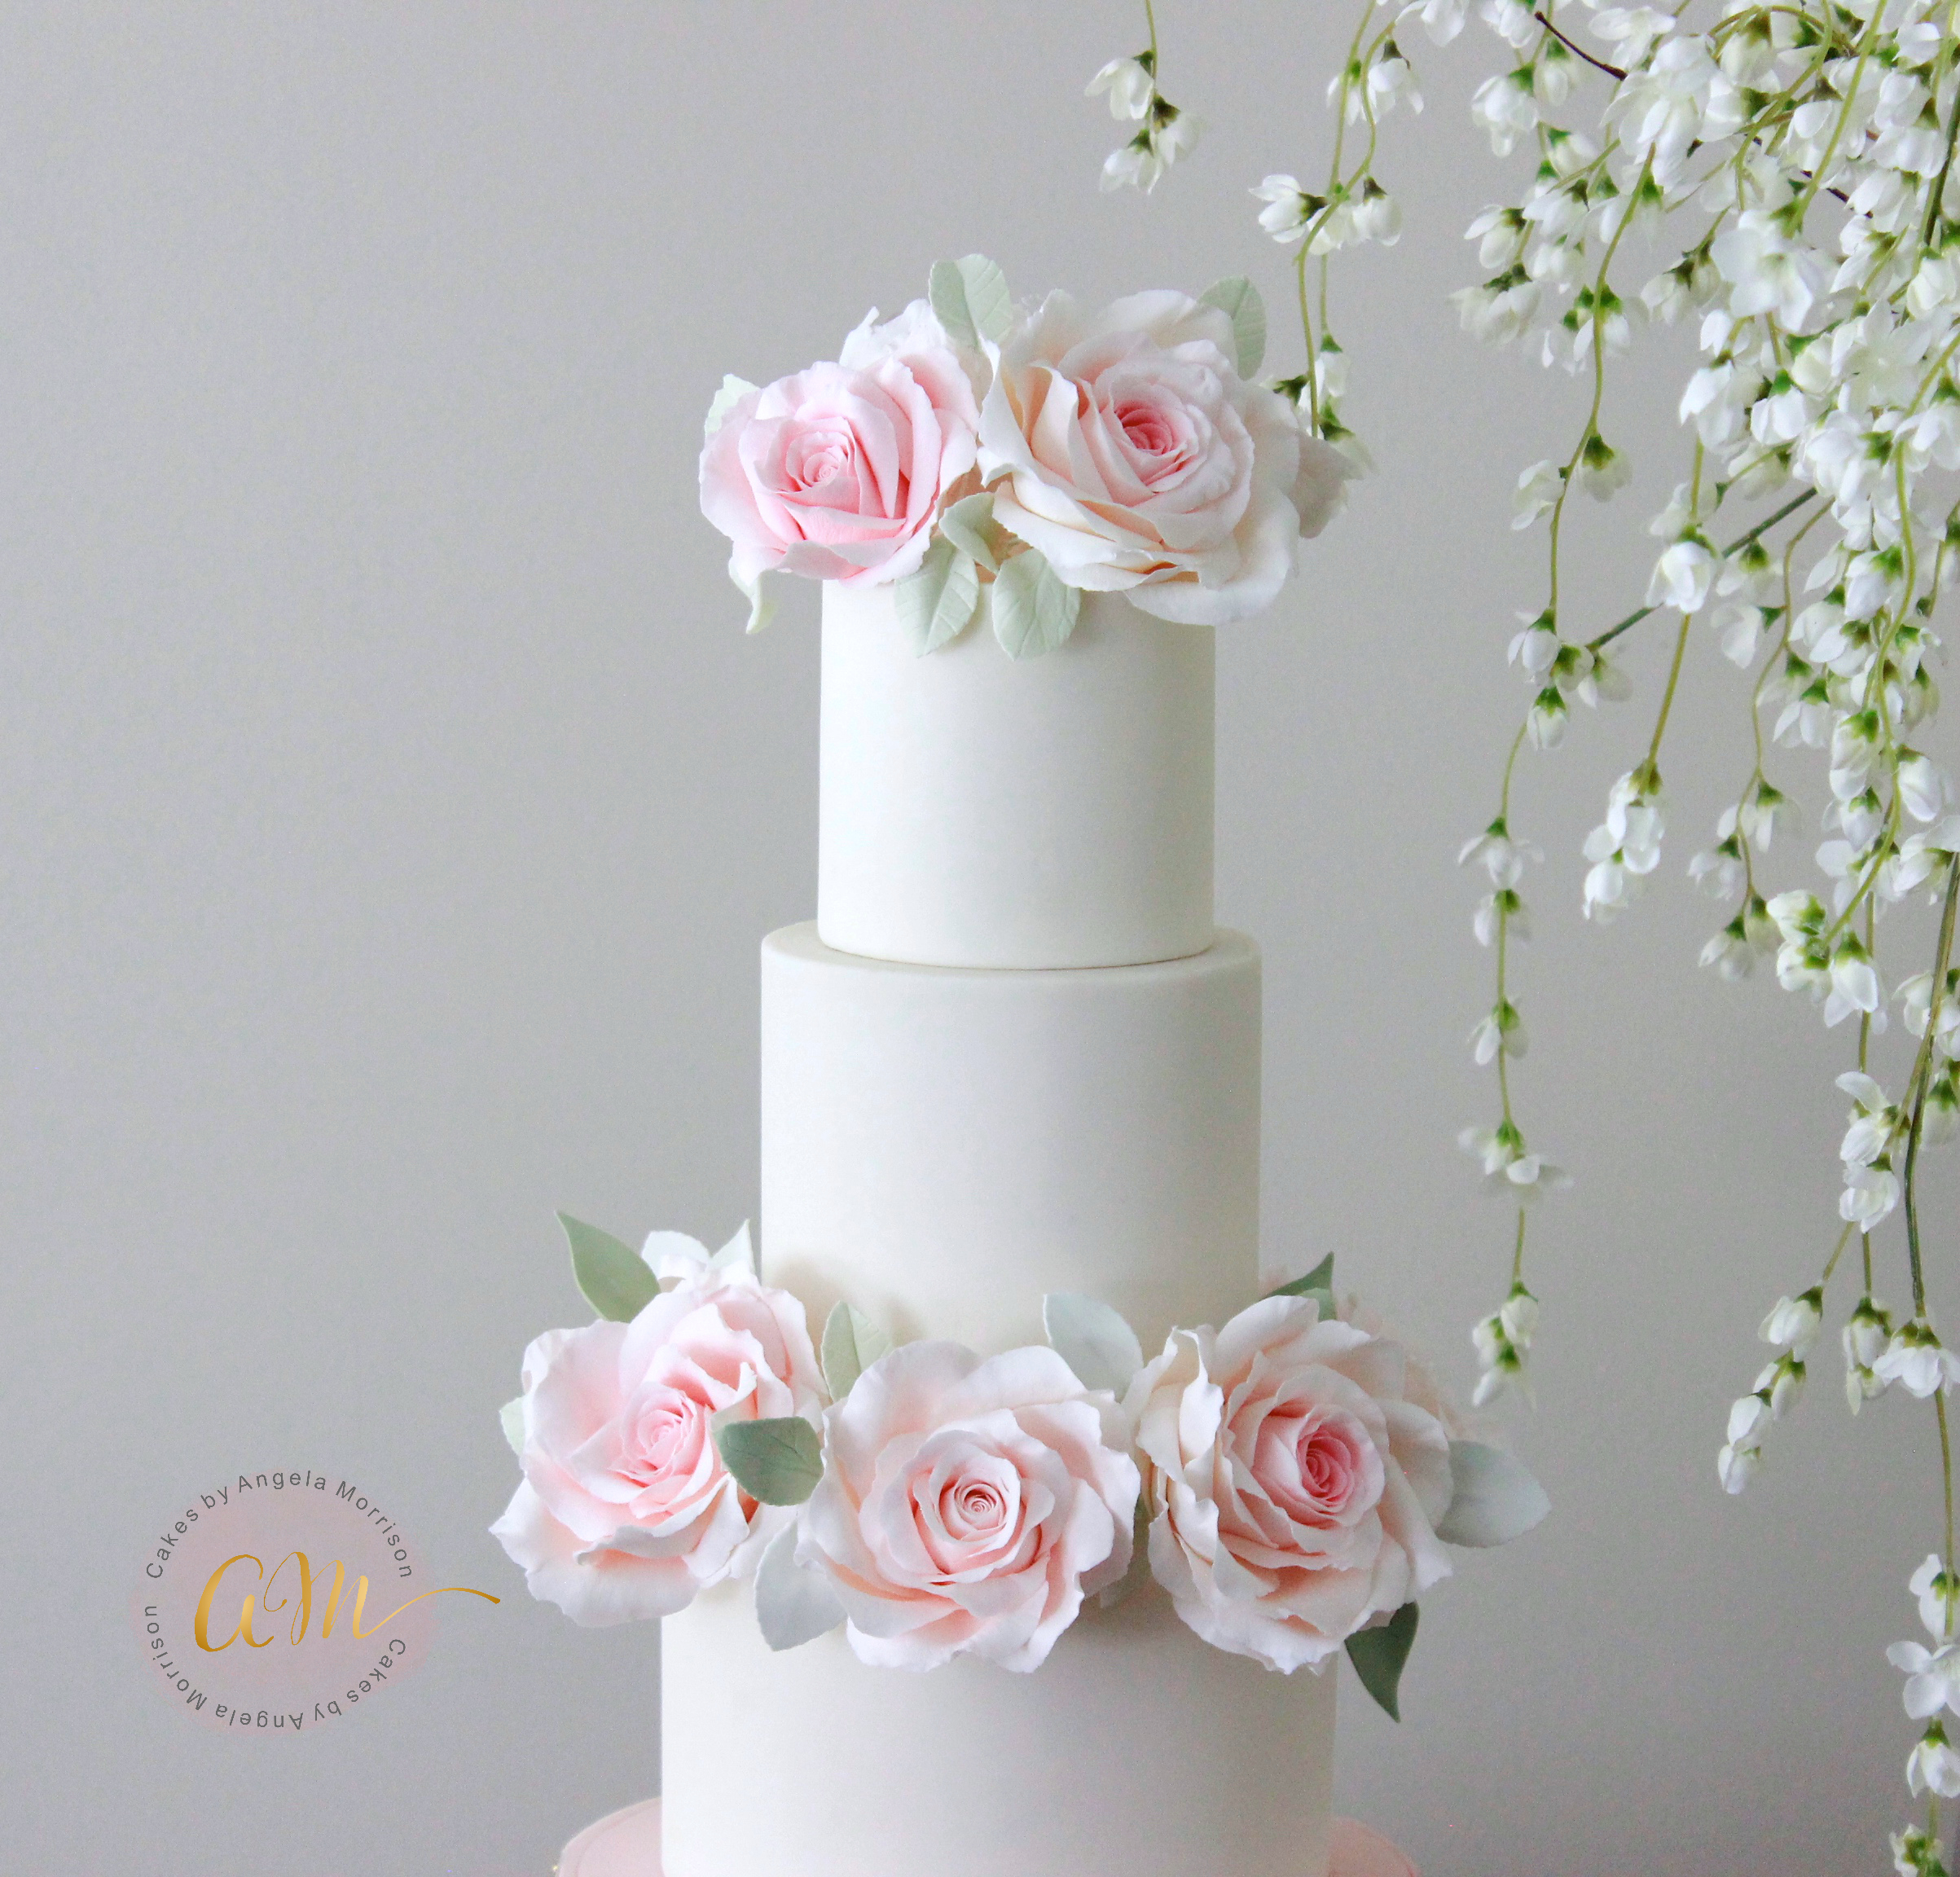 Angelas Signature Large Rose and Rose Bud Online Class Cakes by